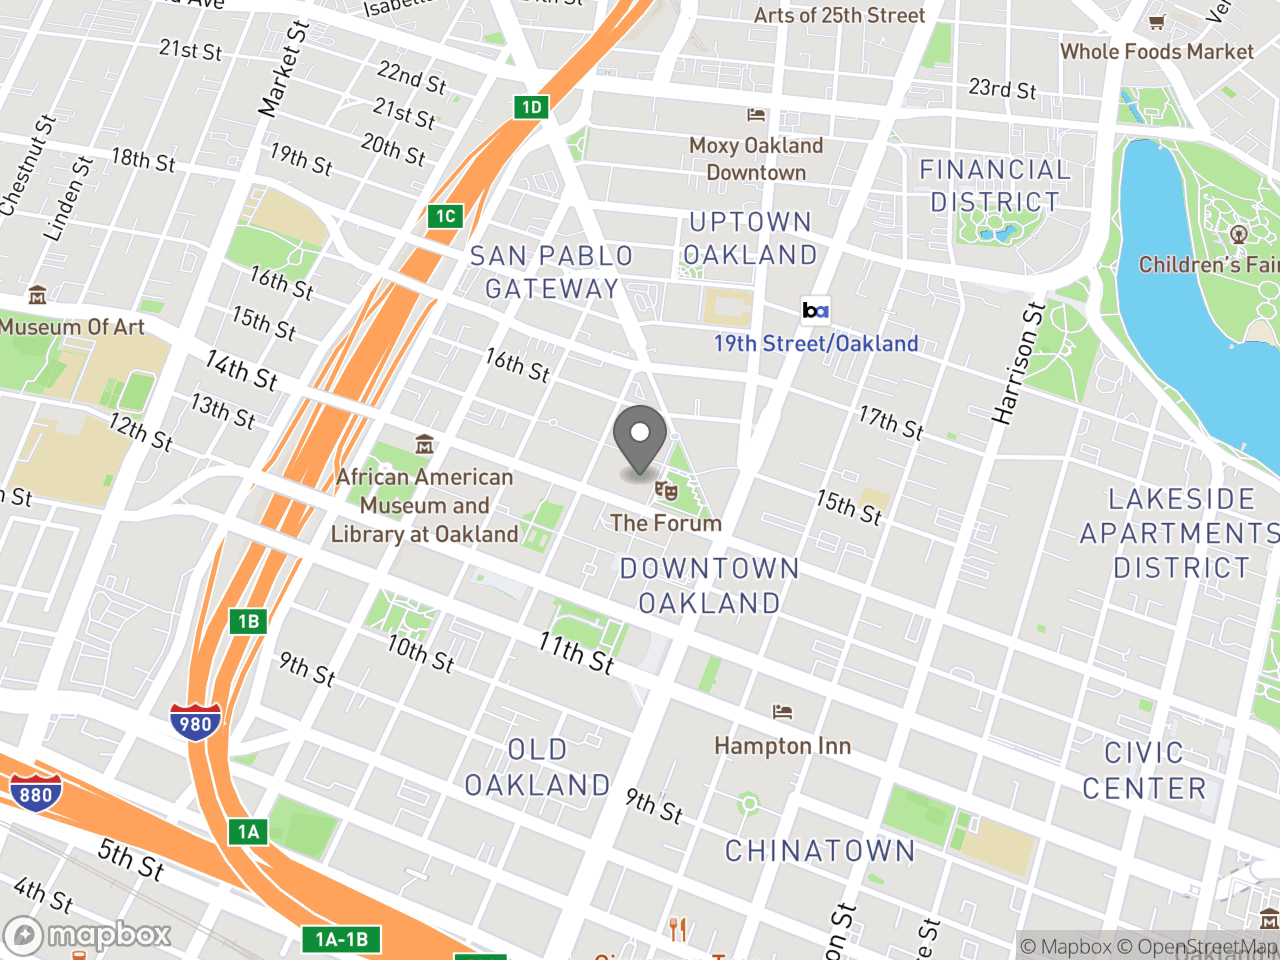 Map image for PAC Meeting October 3, 2019, located at 1 Frank H Ogawa Plaza in Oakland, CA 94612